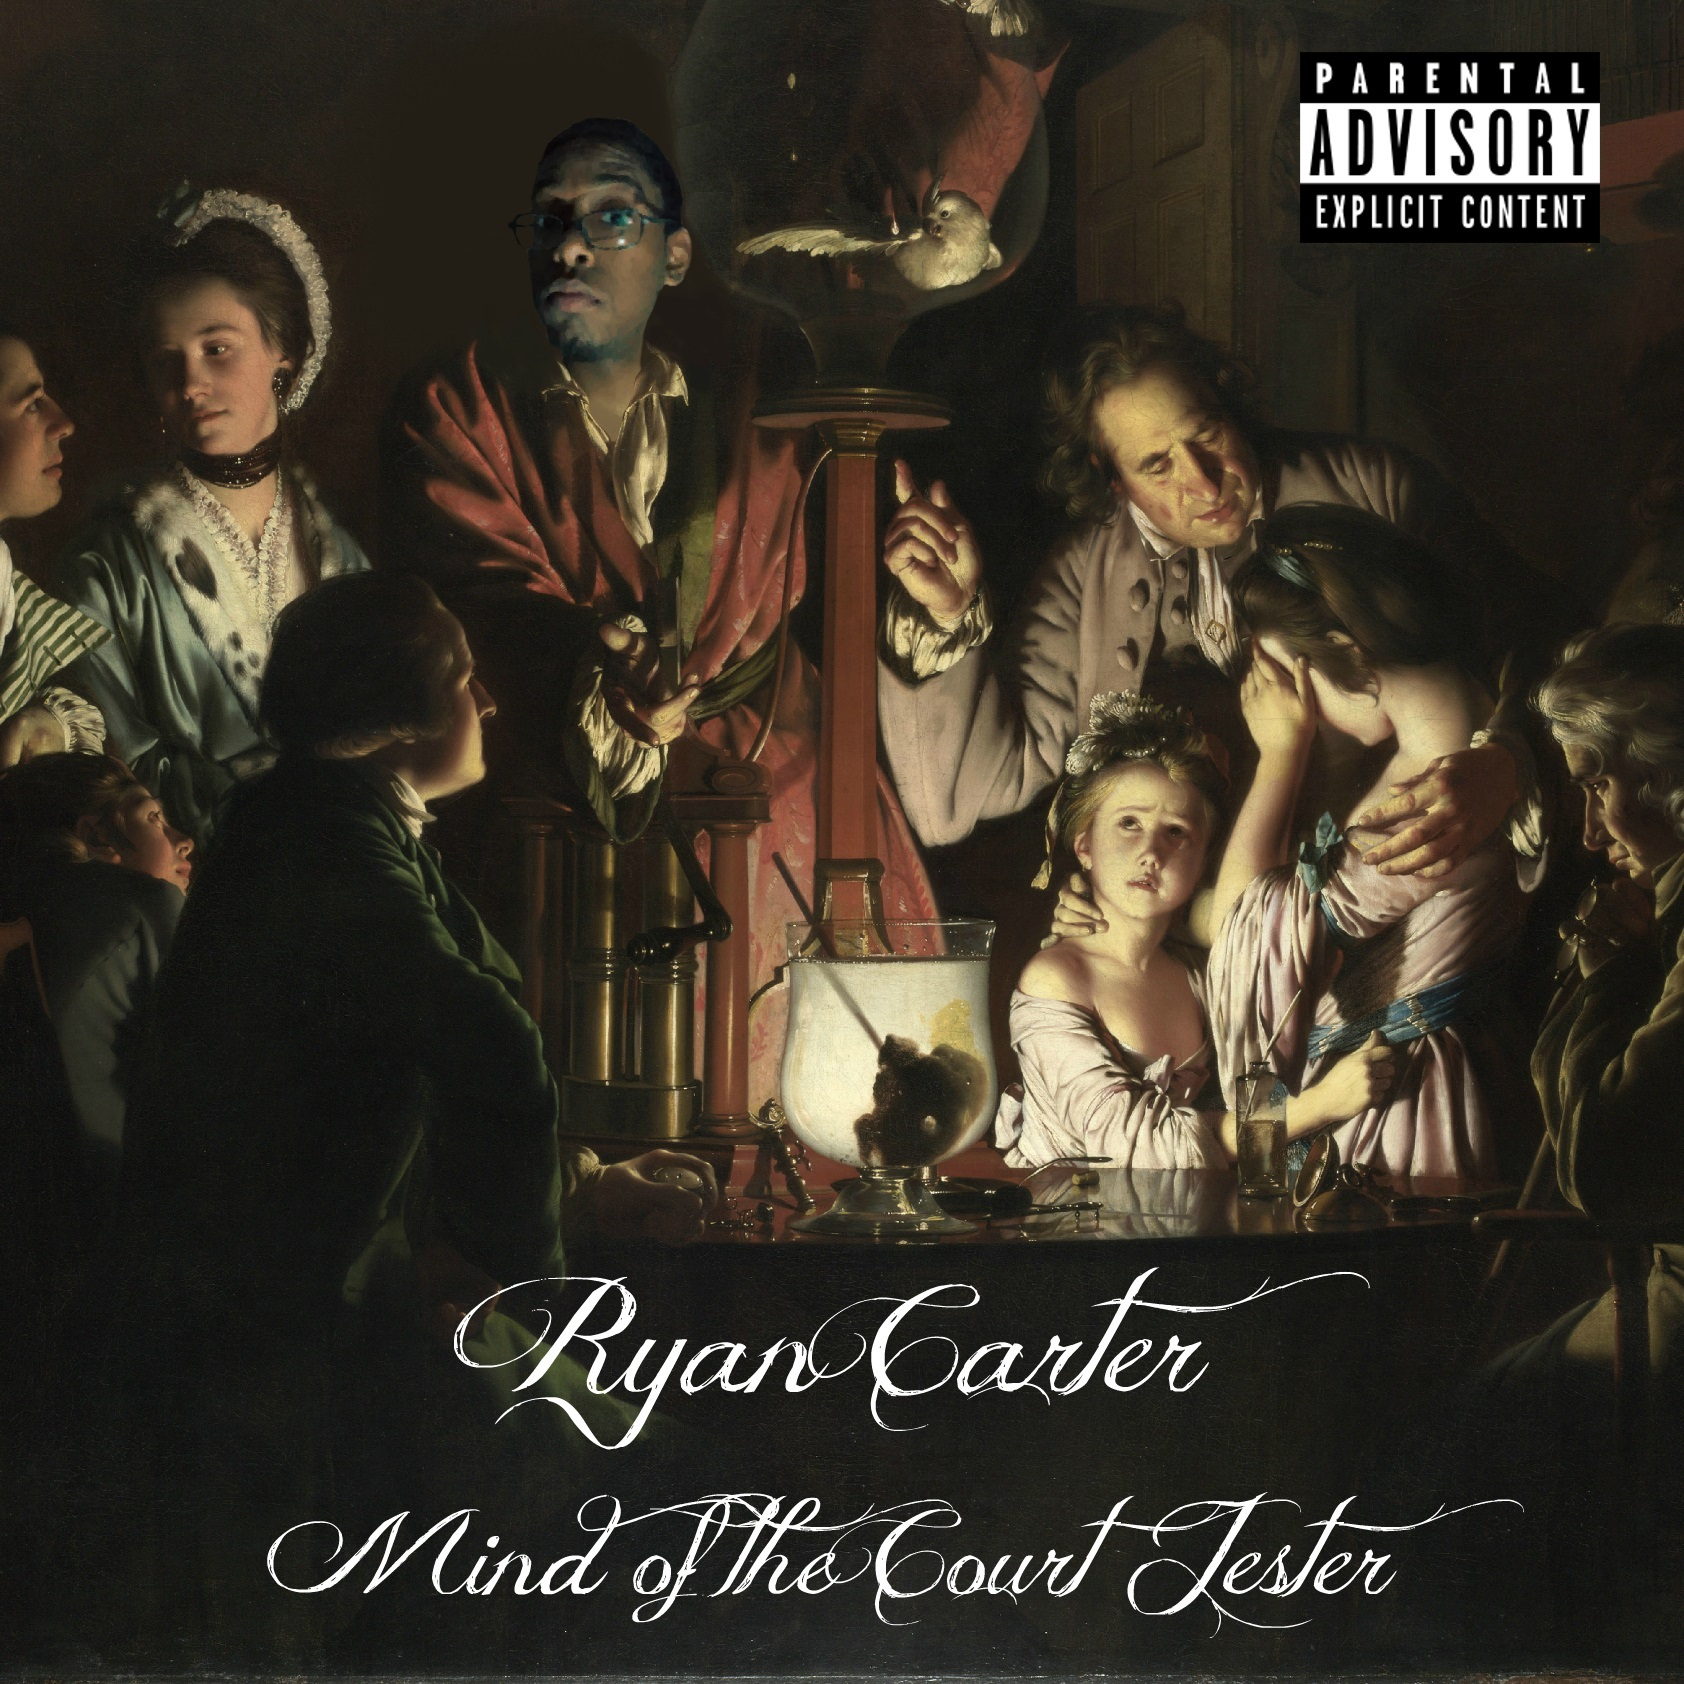 Mind of the Court Jester